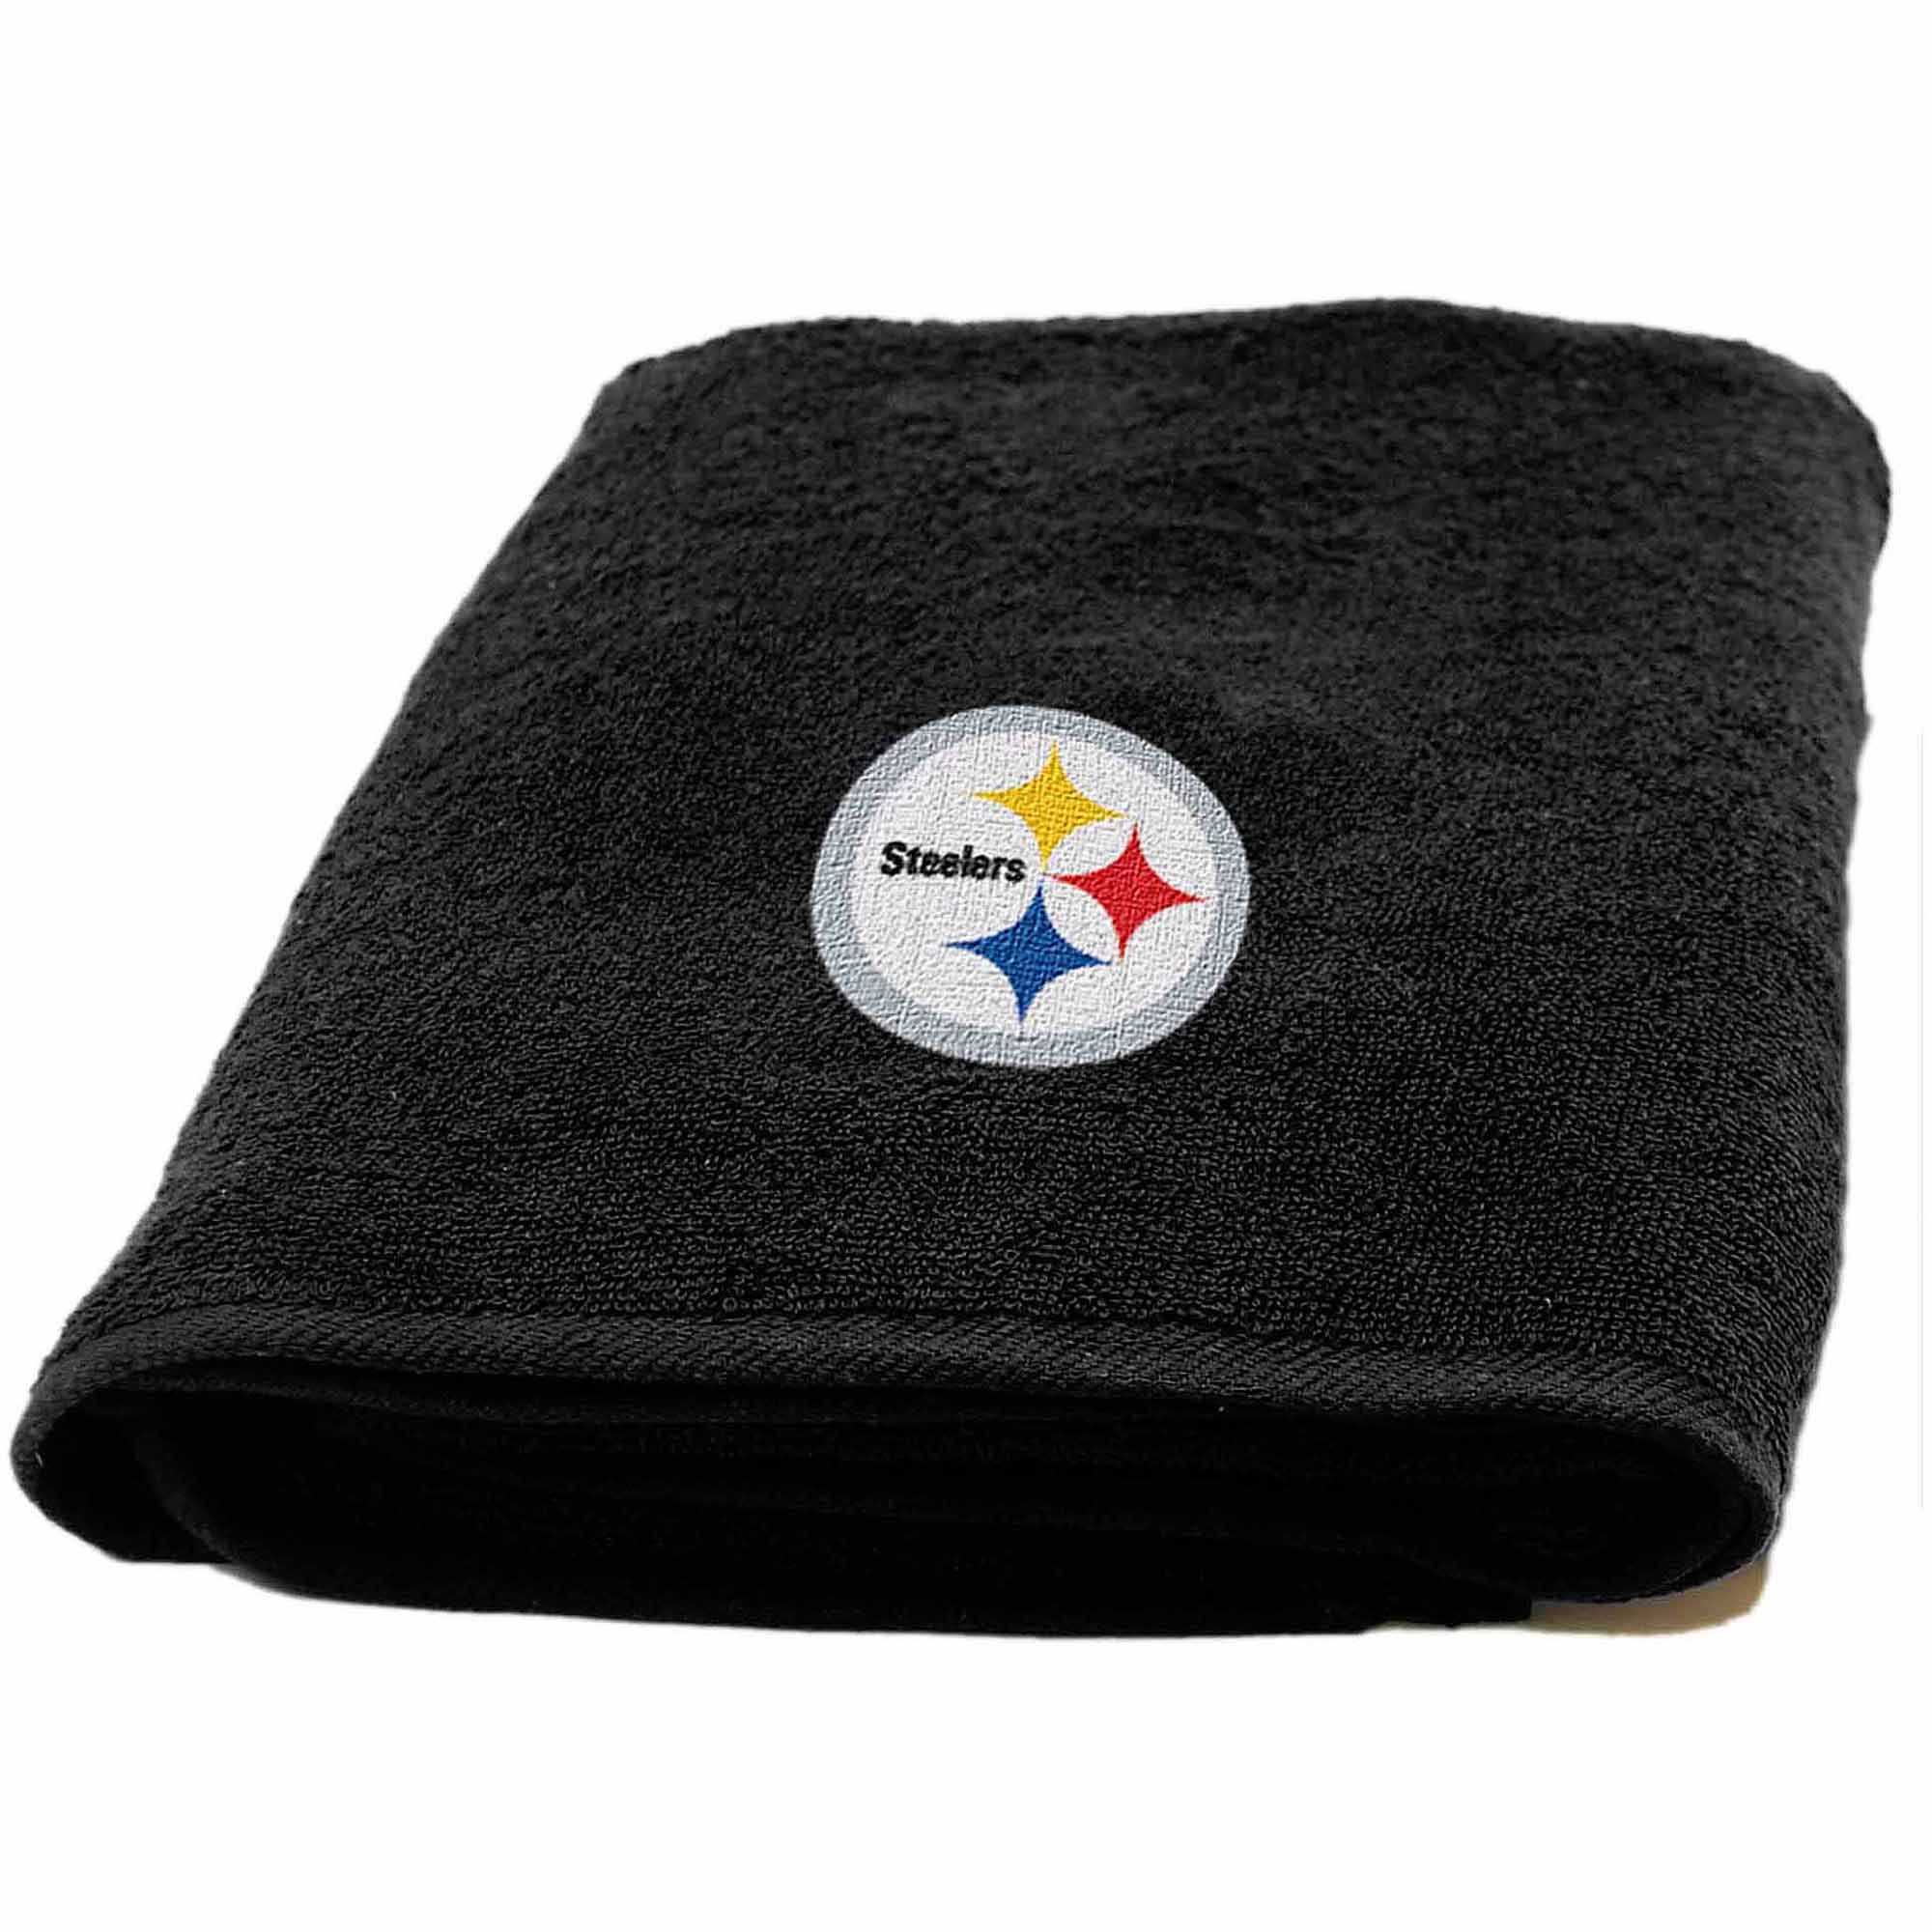 Nfl Pittsburgh Steelers Decorative Bath Collection Towel